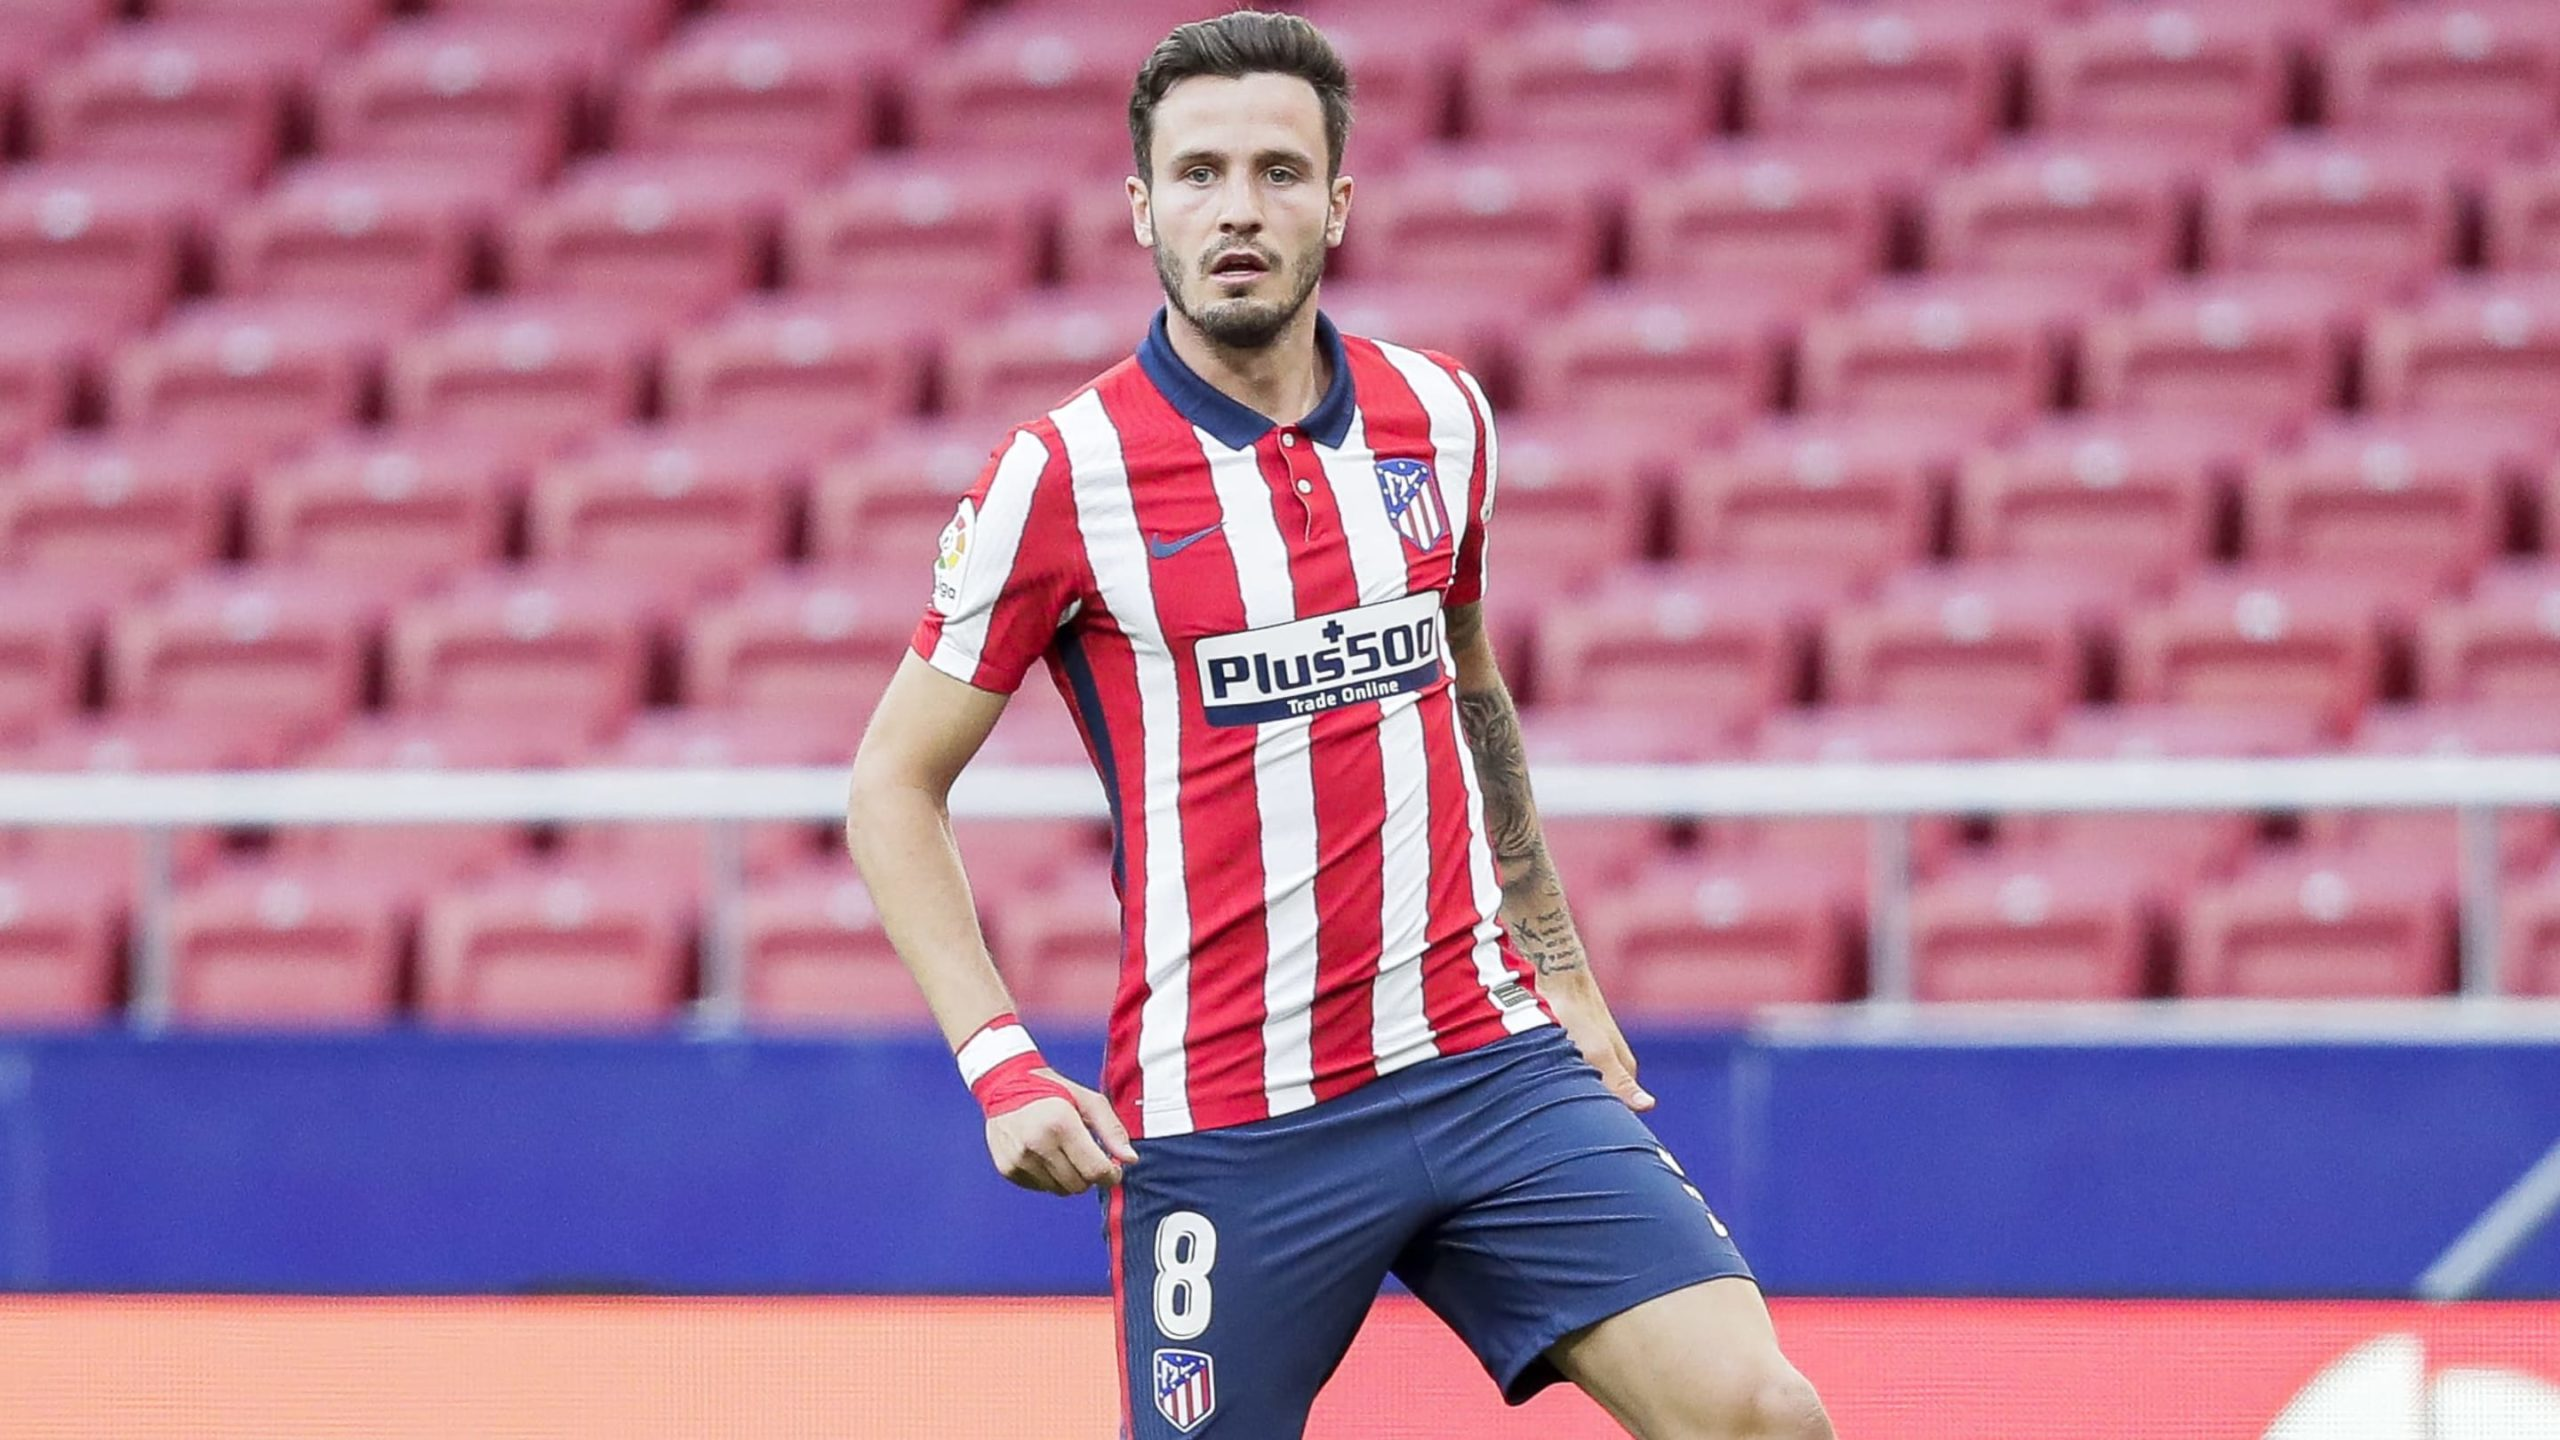 chelsea-liverpool-kind-contact-with-agent-of-saul-niguez.jpg